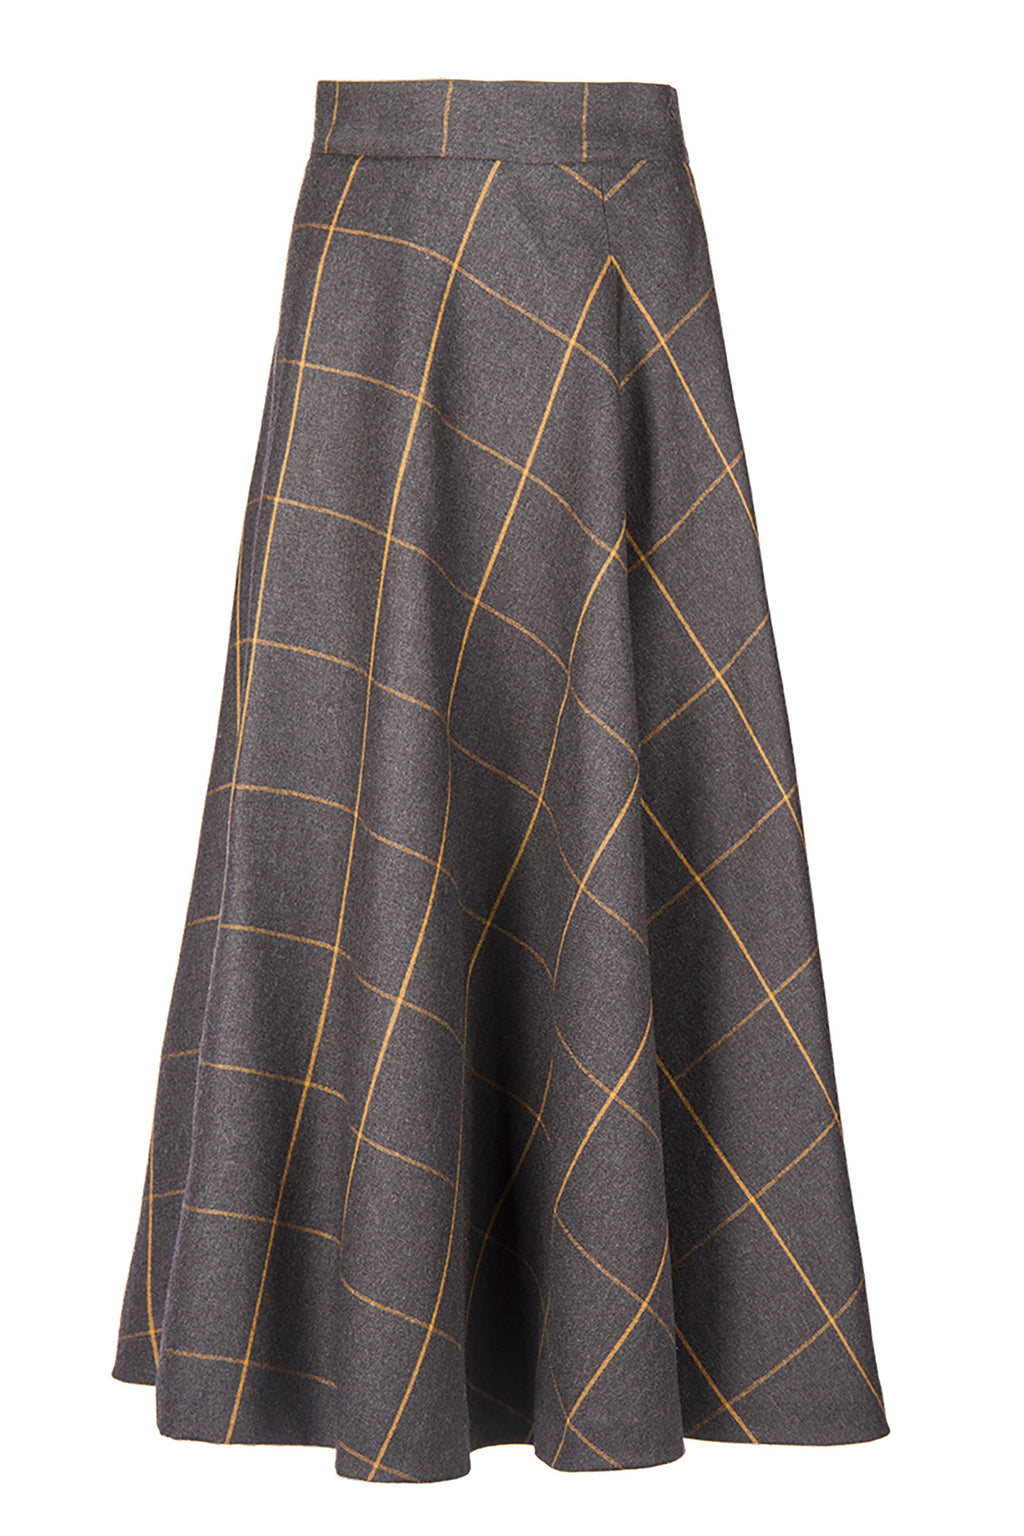 Vintage Checkered High Waisted Maxi Skirt